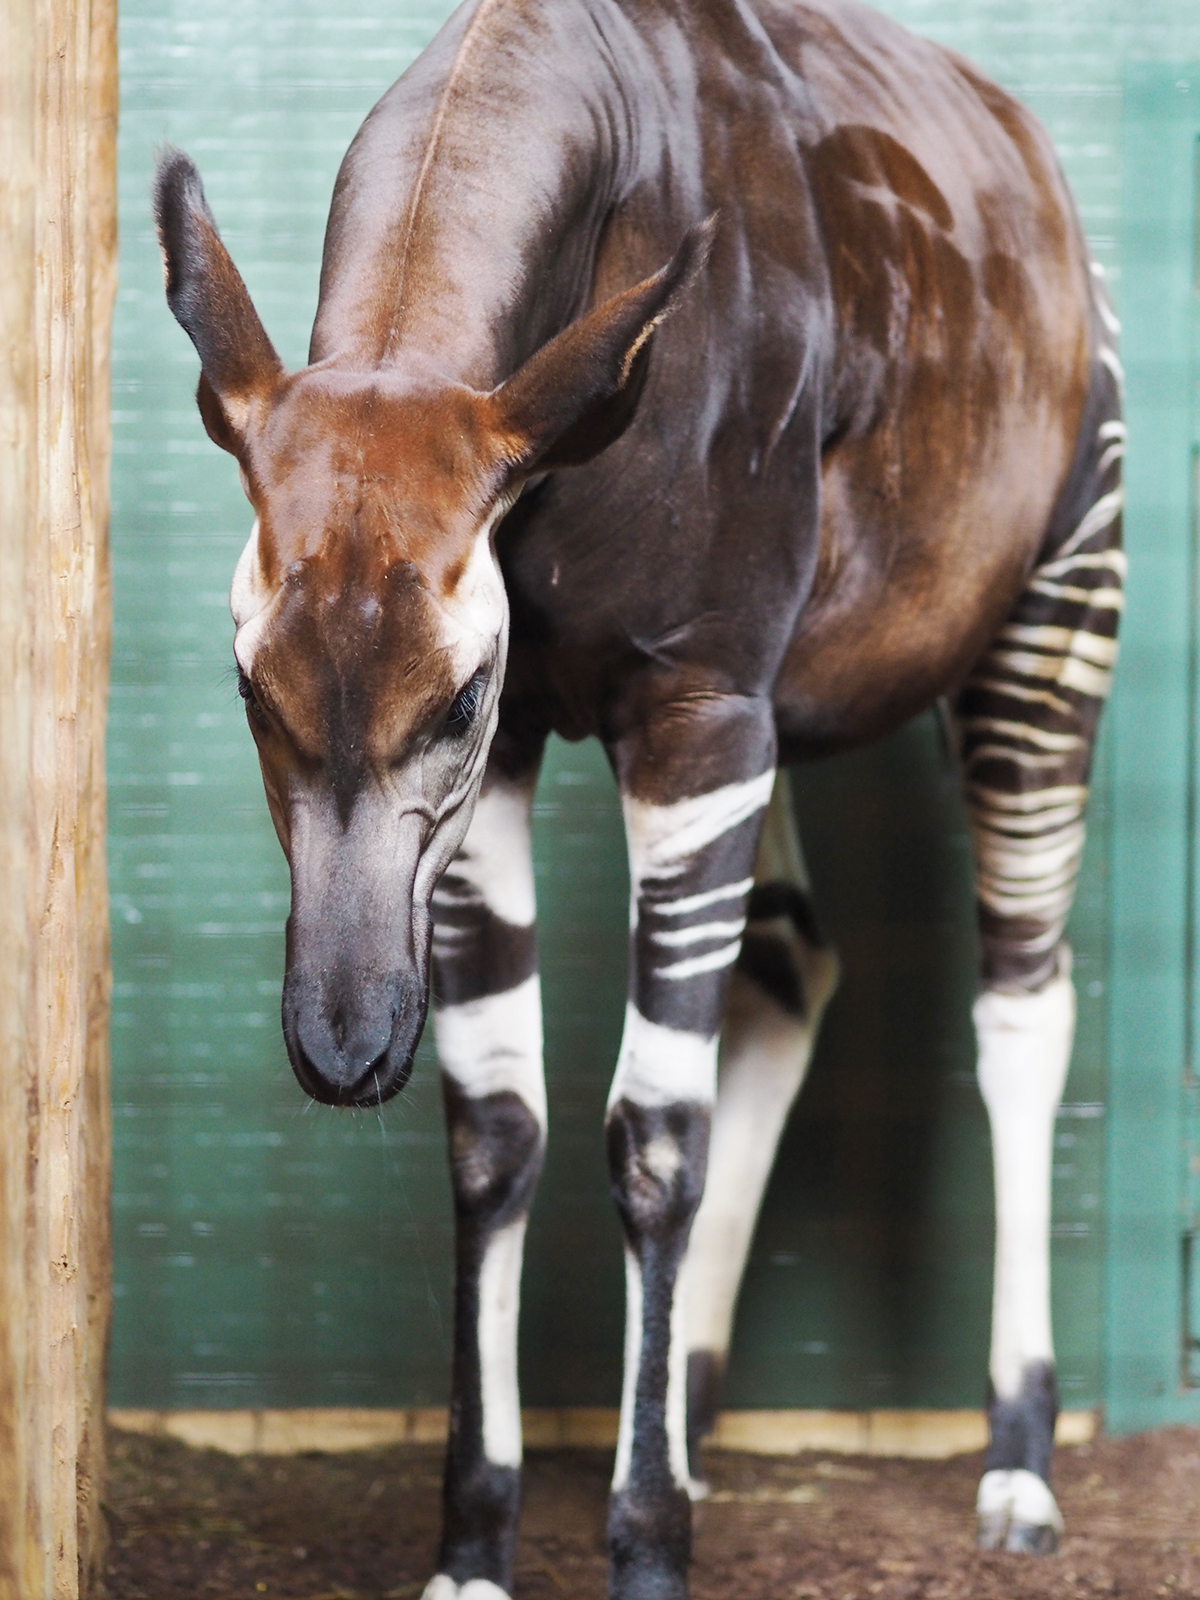 ZSL london zoo okapi